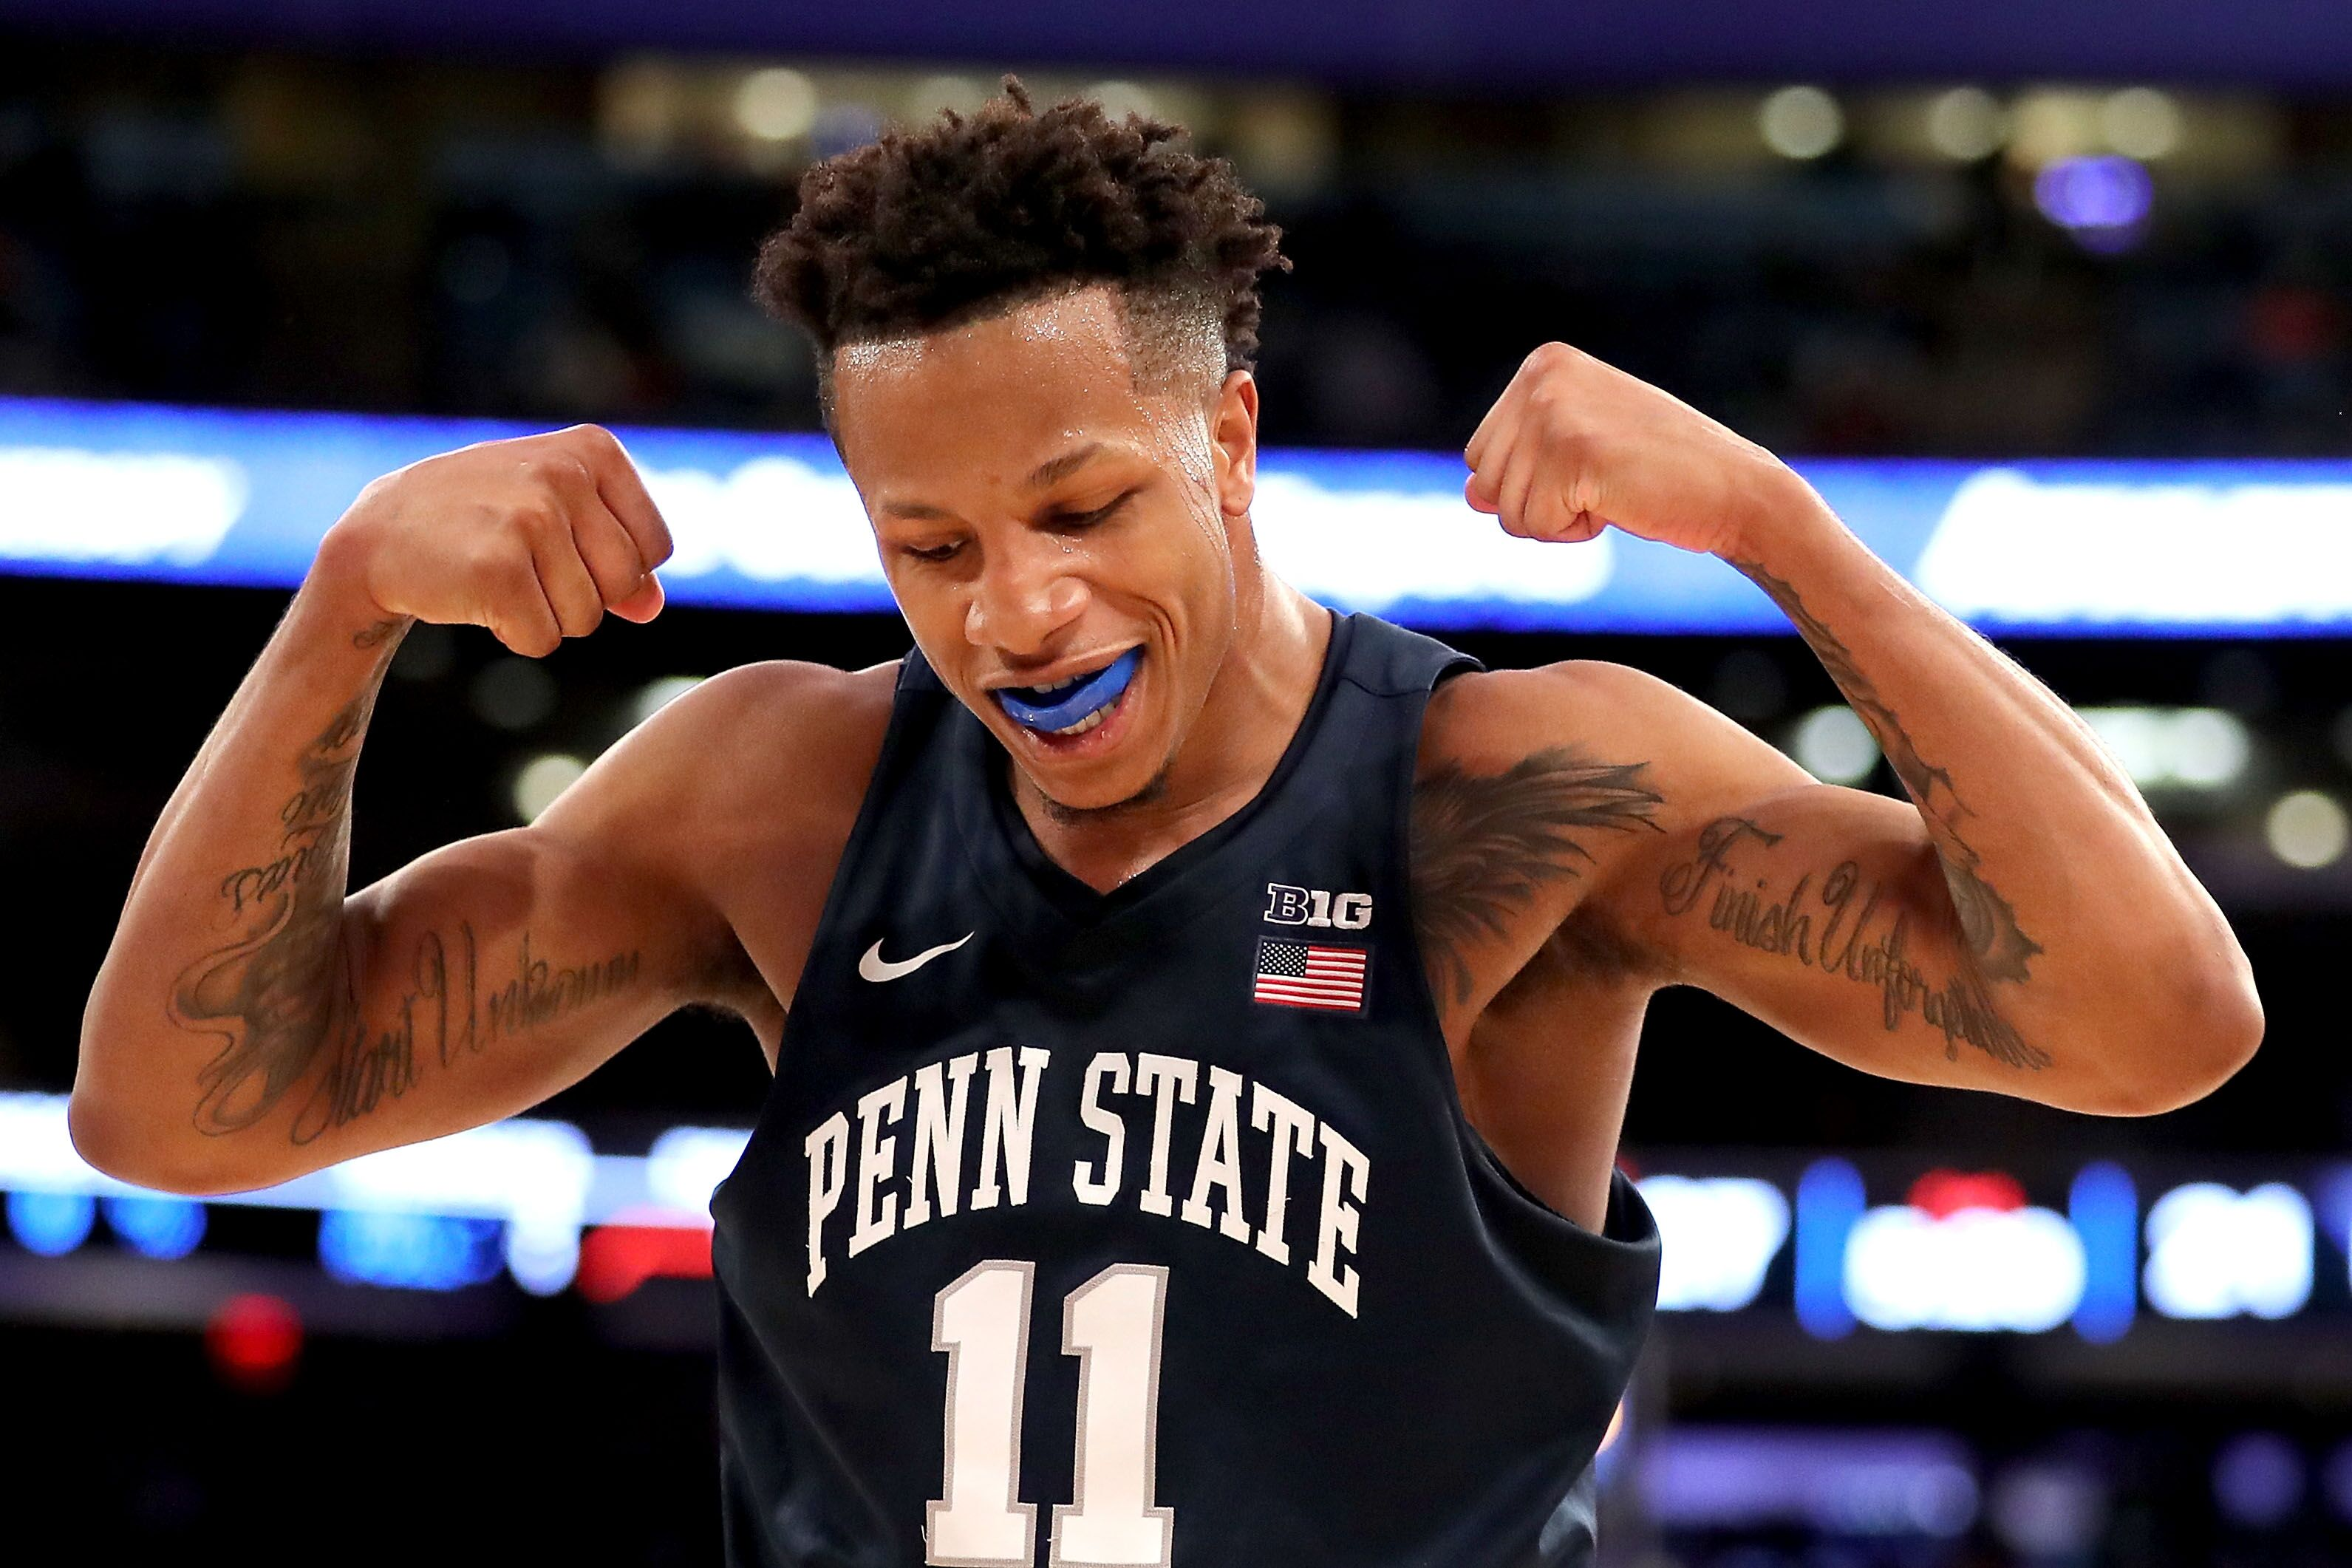 Penn State Basketball: Nittany Lions to host Delaware in charity exhibition